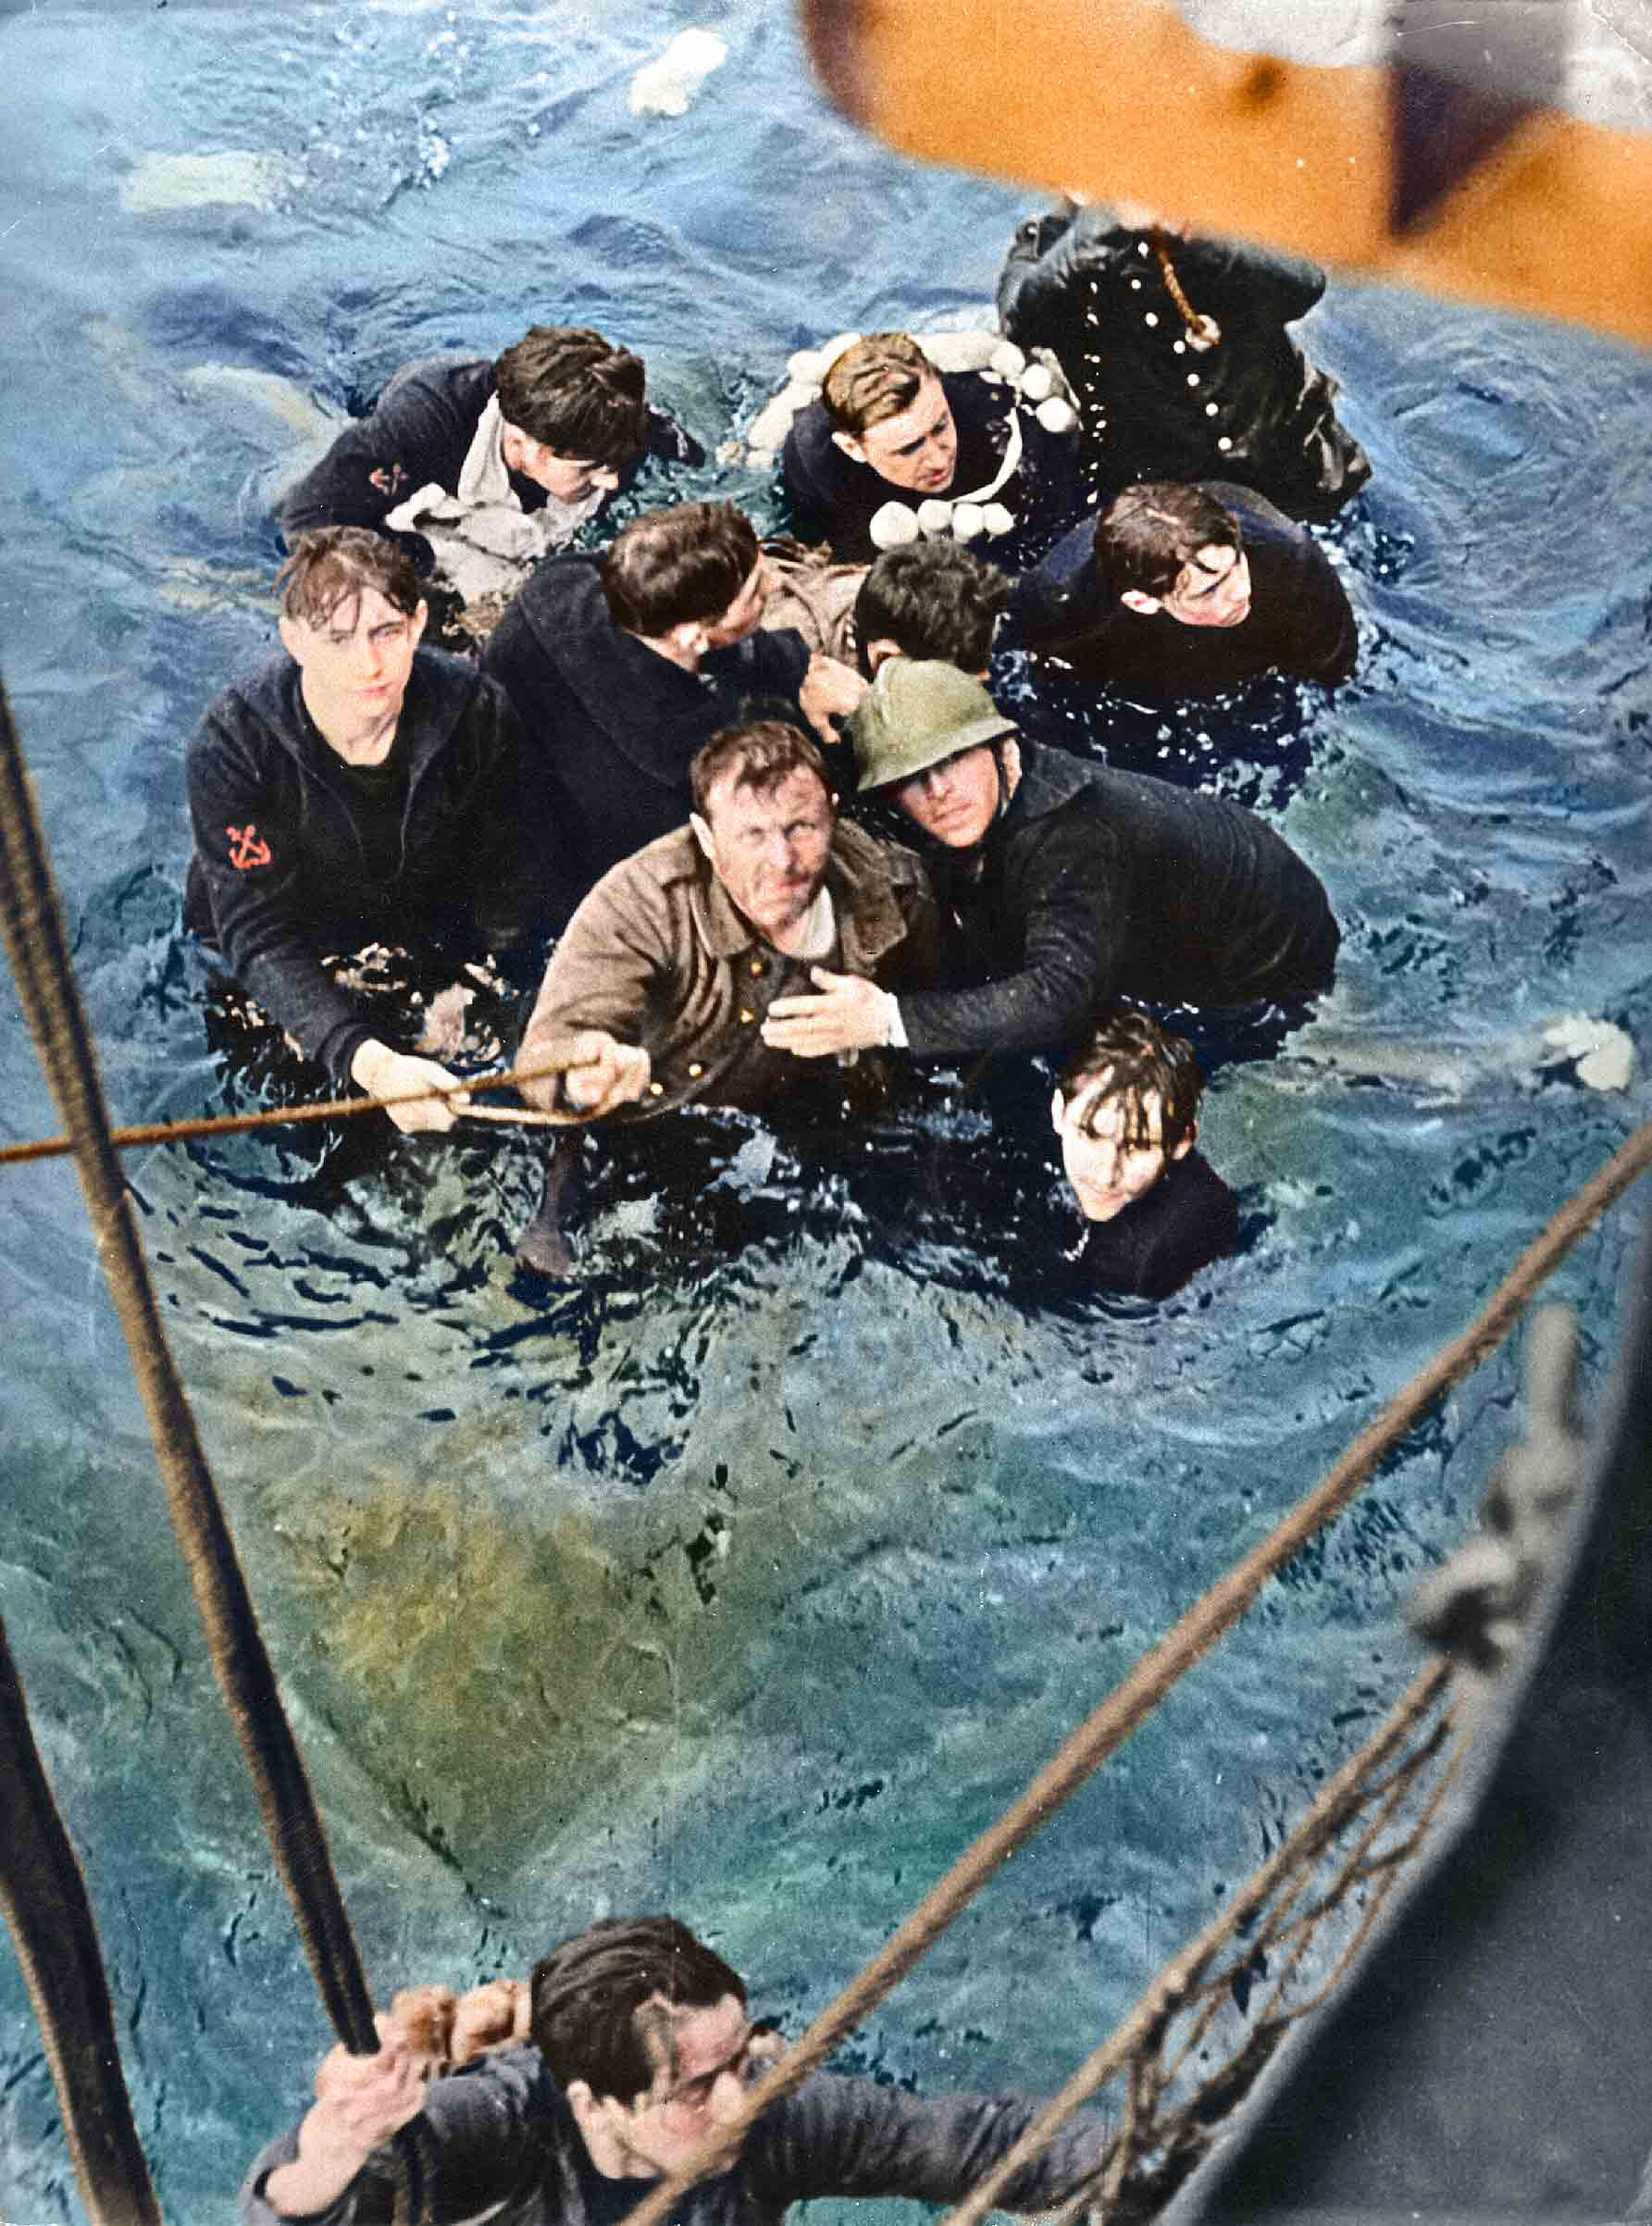 Crew members of the French destroyer Bourrasque, sunk by mine at Dunkirk, are hauled aboard a British vessel from their sinking life-raft.